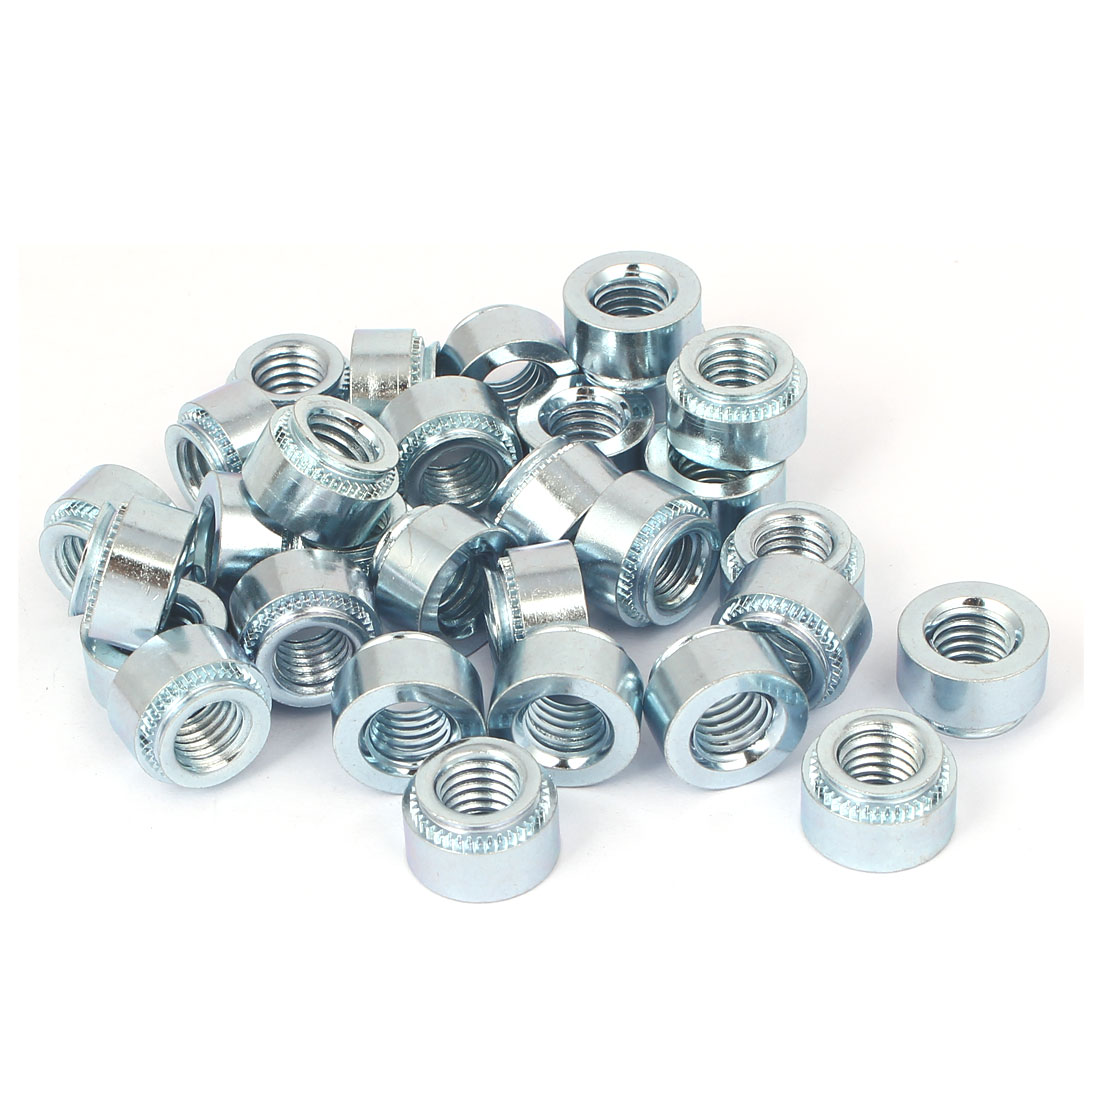 S-M10-2 Carbon Steel Self Clinching Rivet Nut Fastener 30pcs for 3.2mm Thin Plates